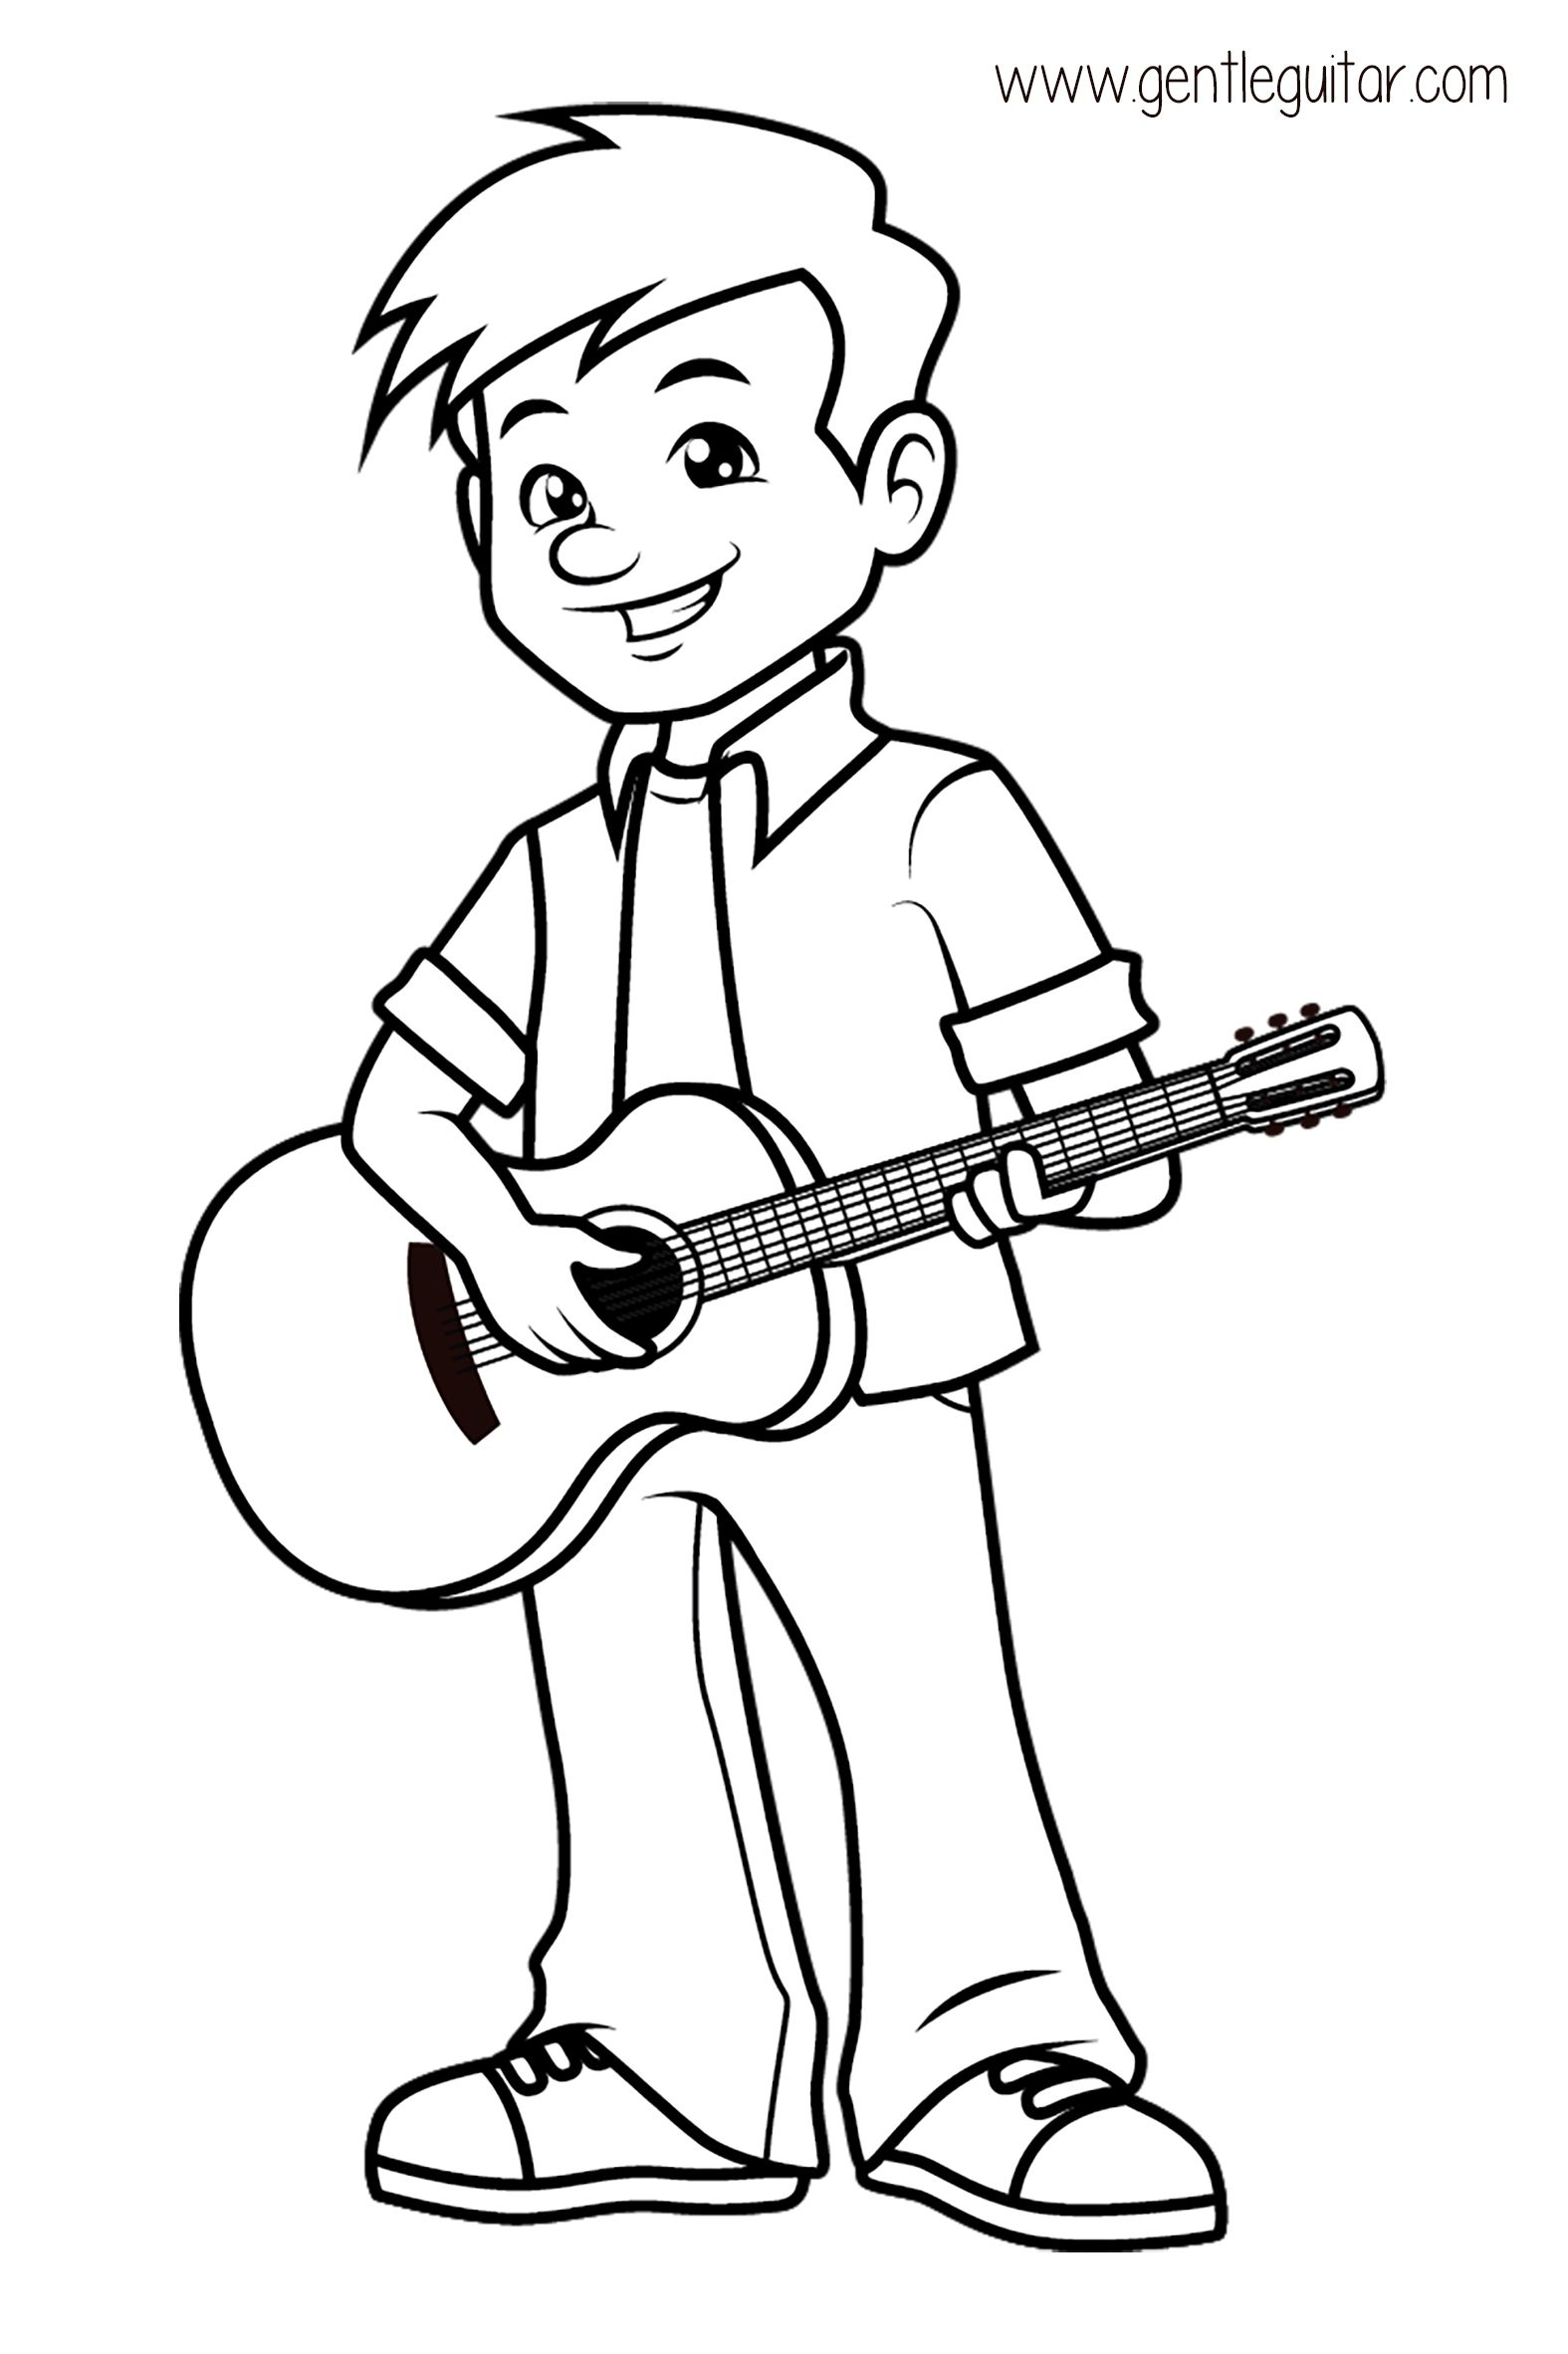 Sponsored Coloring Prepares Children For Formal Music Tuition By